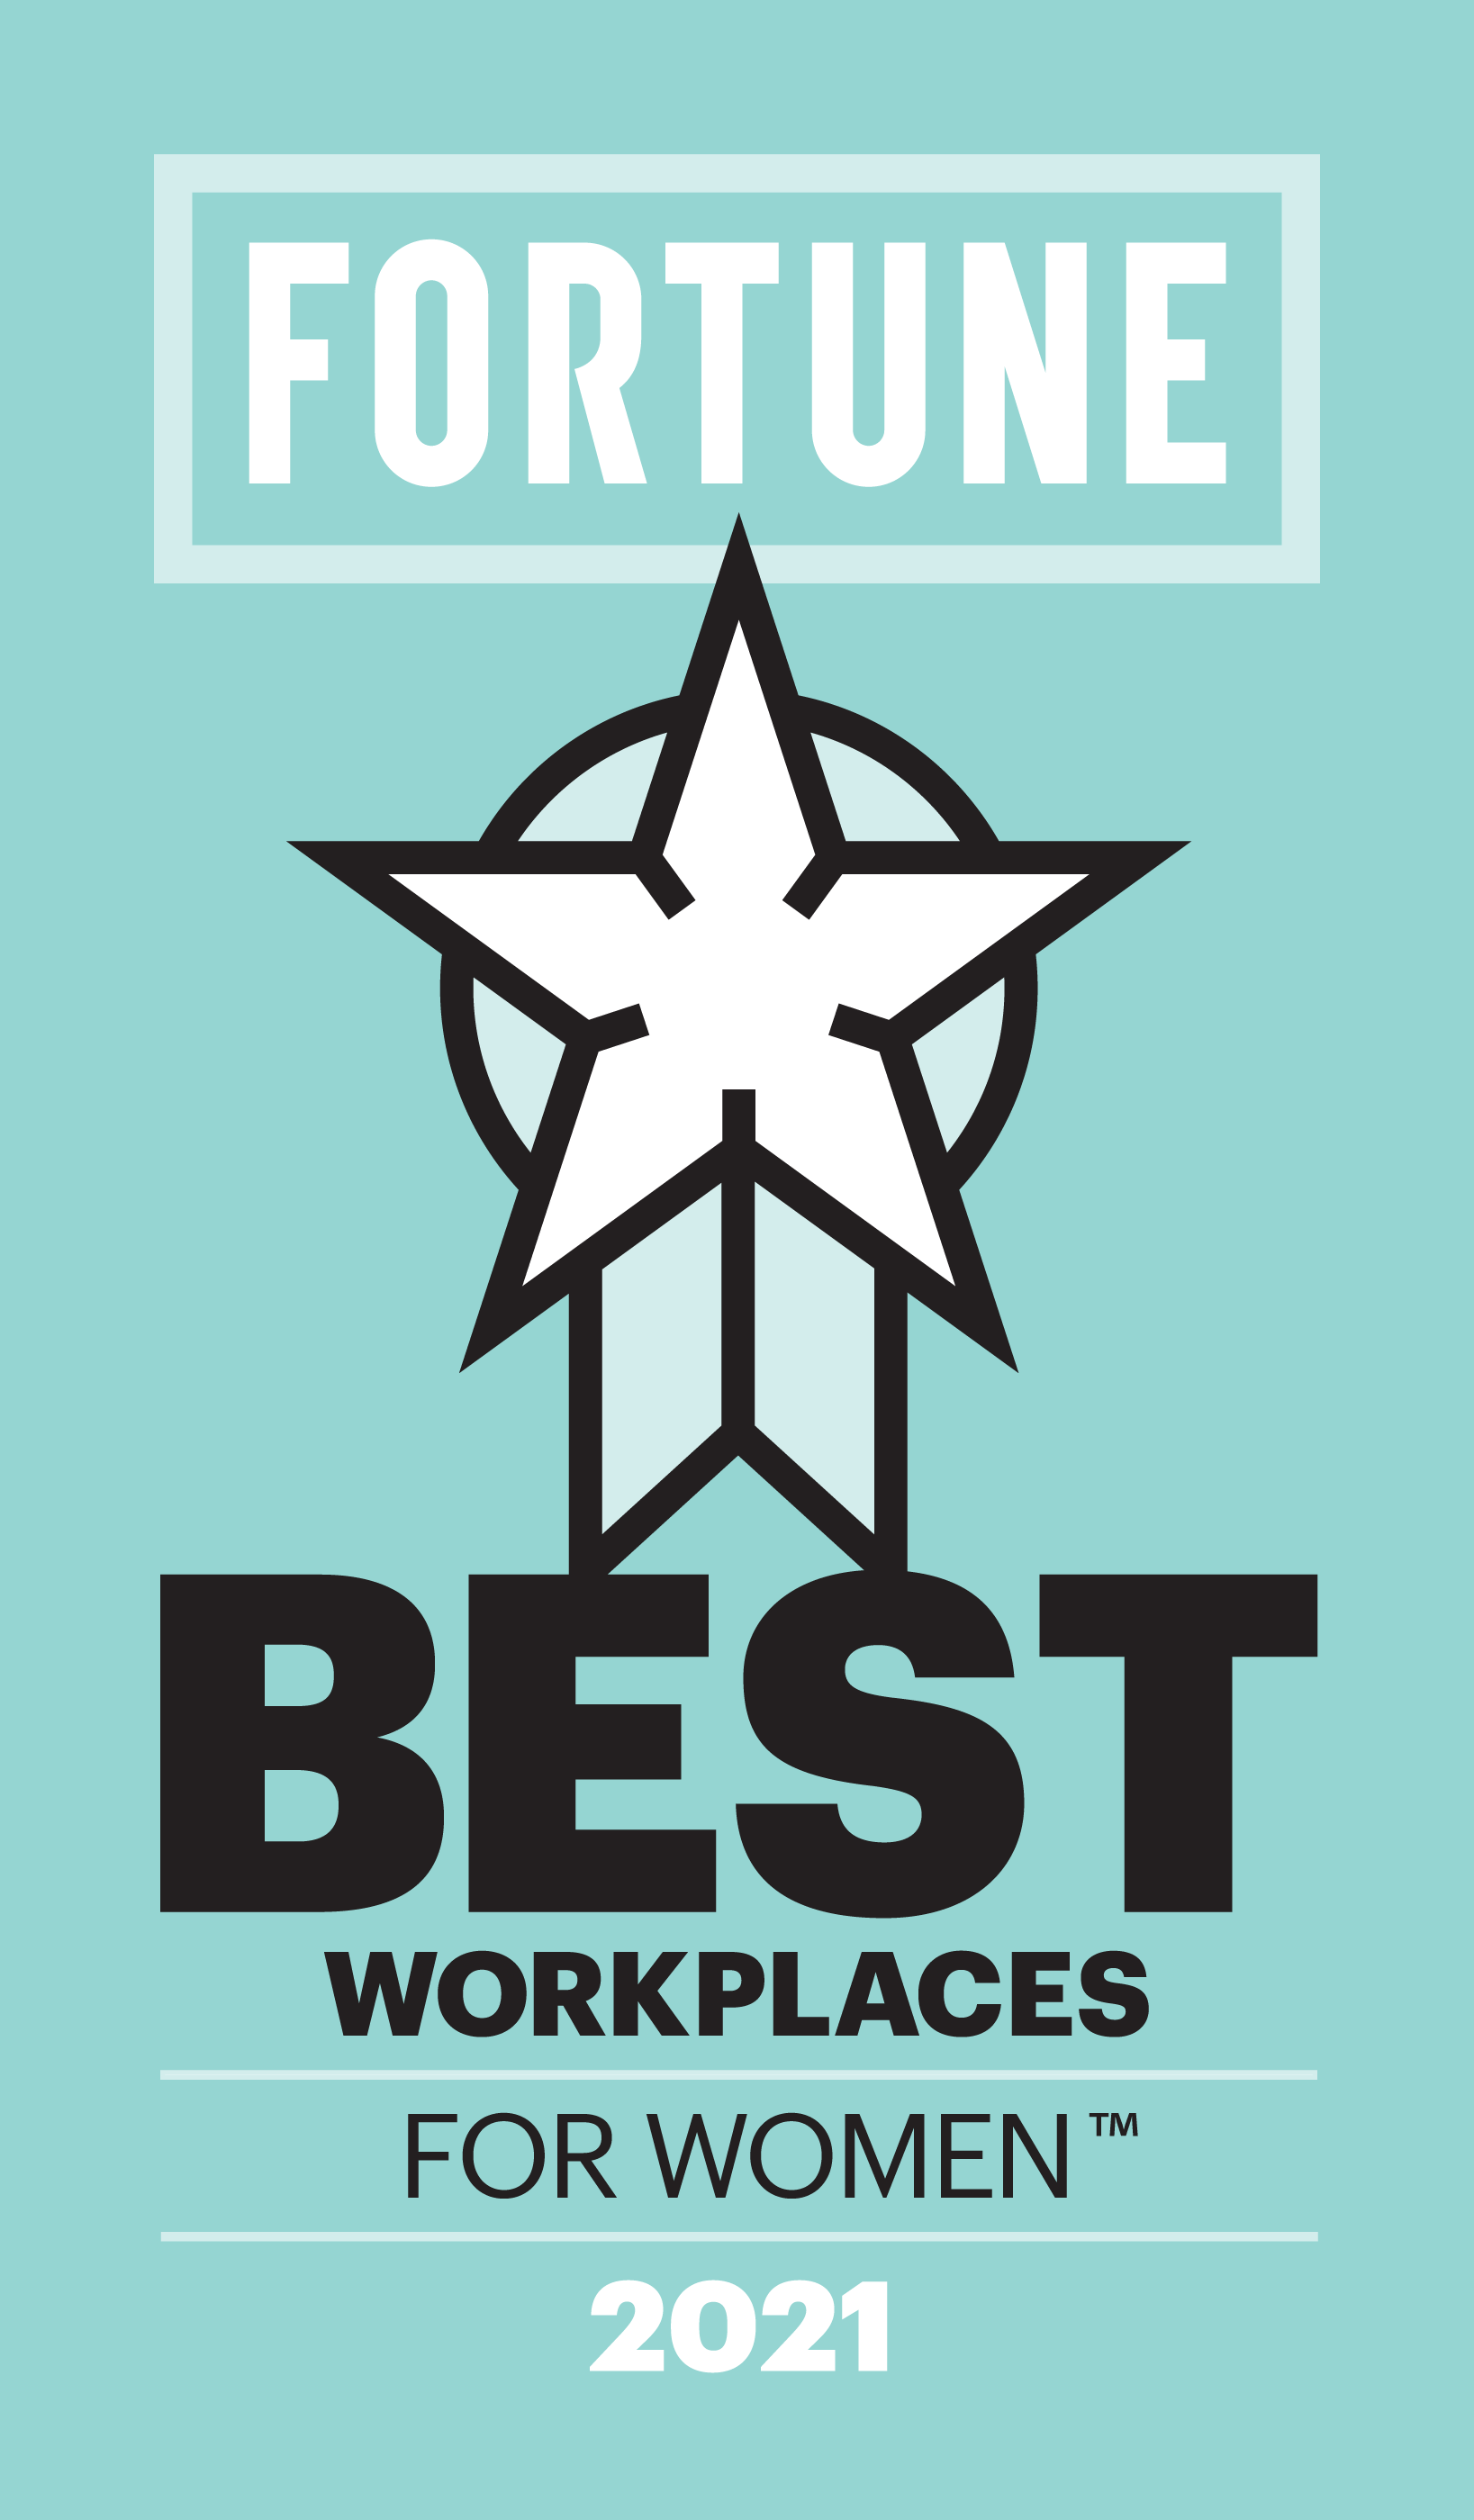 Fortune Best Small and Medium Workplaces for Women 2021